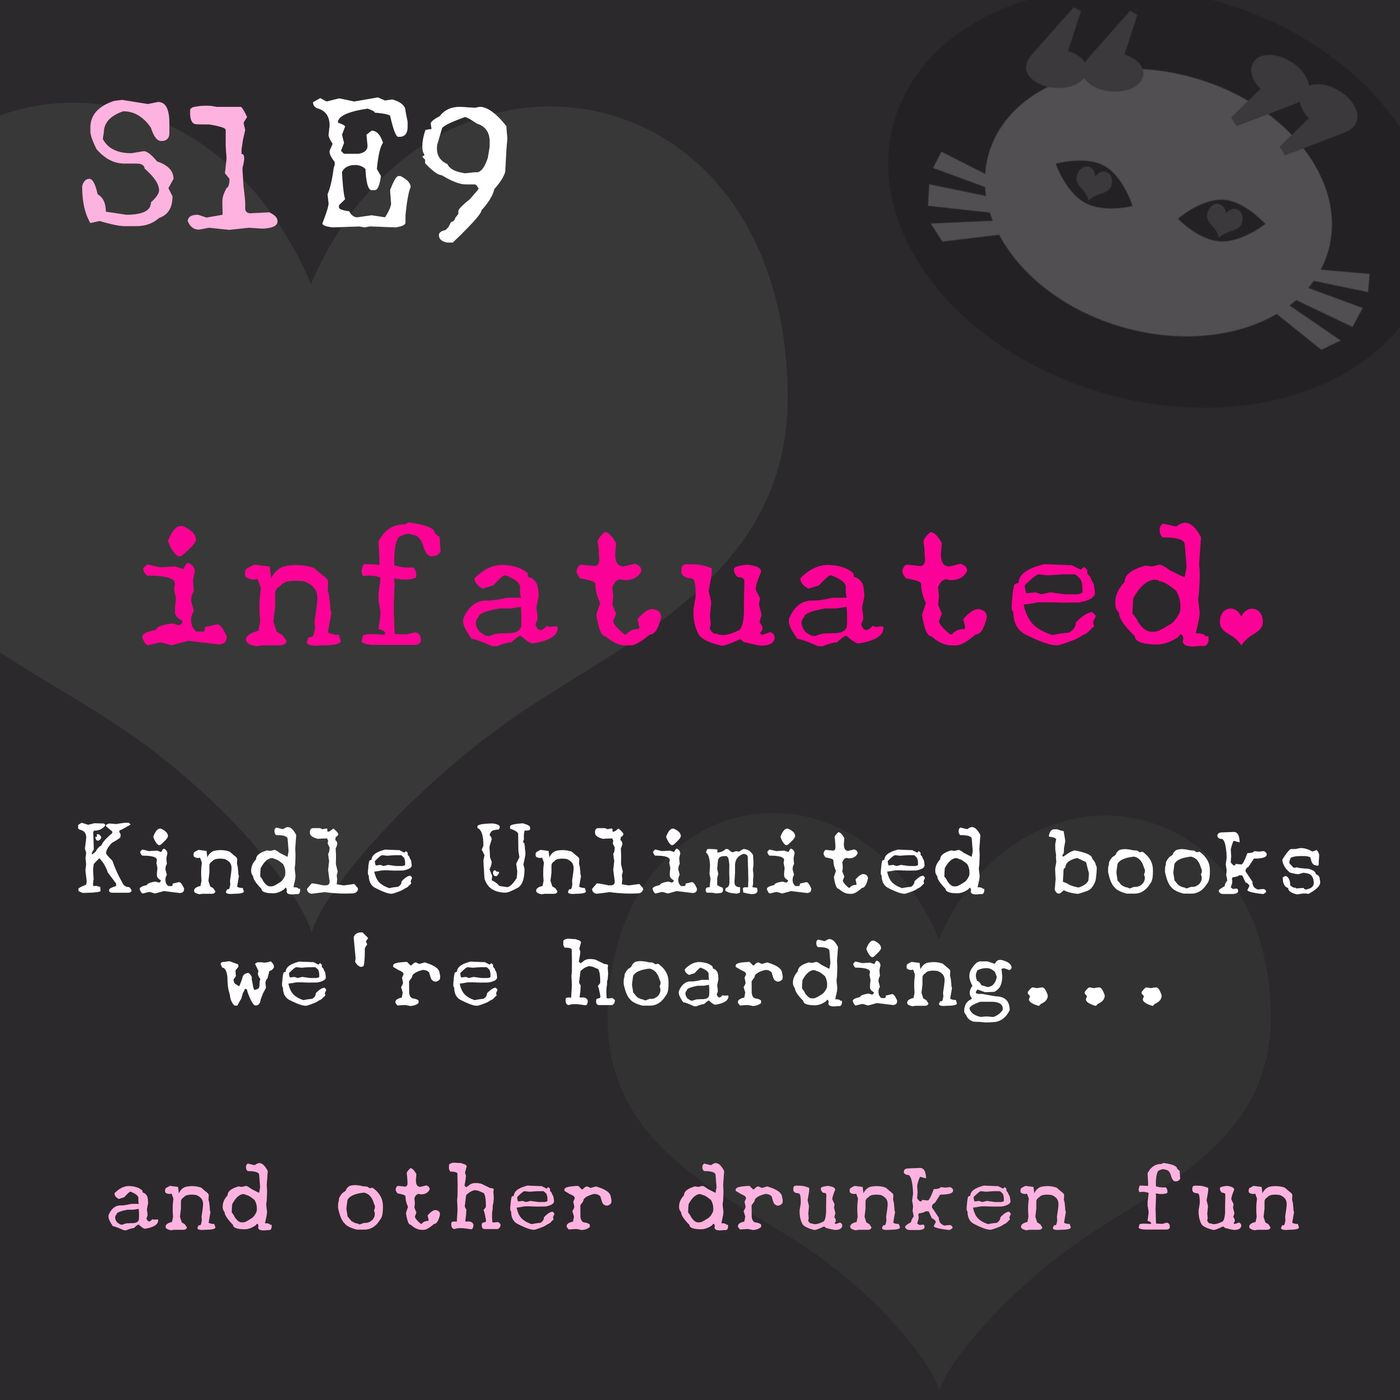 S1E9: Kindle Unlimited books we're hoarding... and way too much wine!